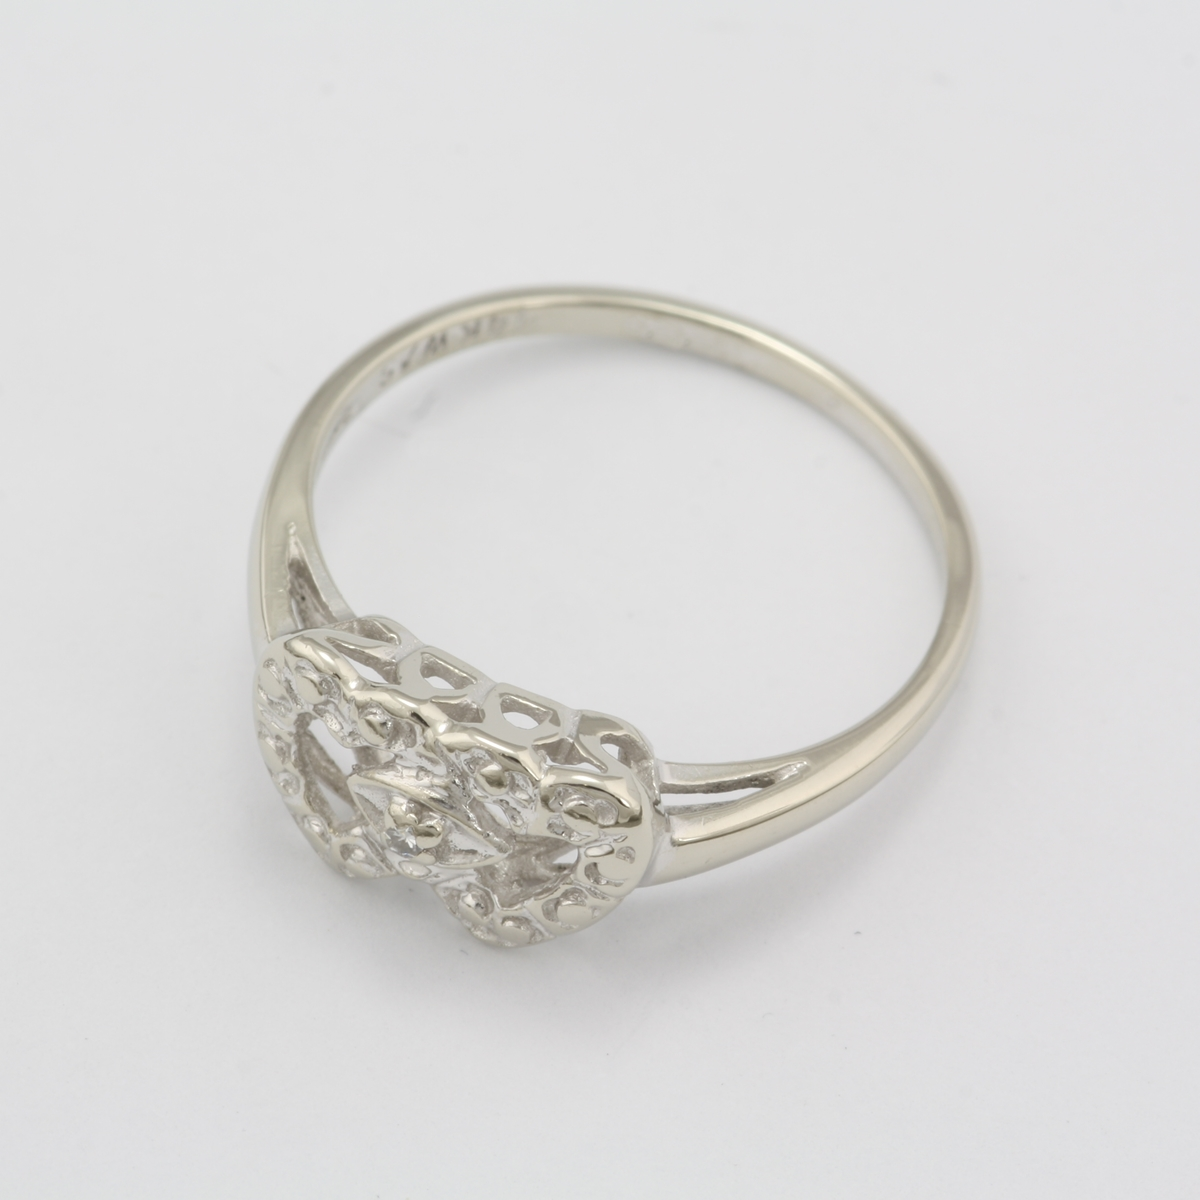 Preowned 14 Karat White Gold Double Heart Ring With Diamond Accent